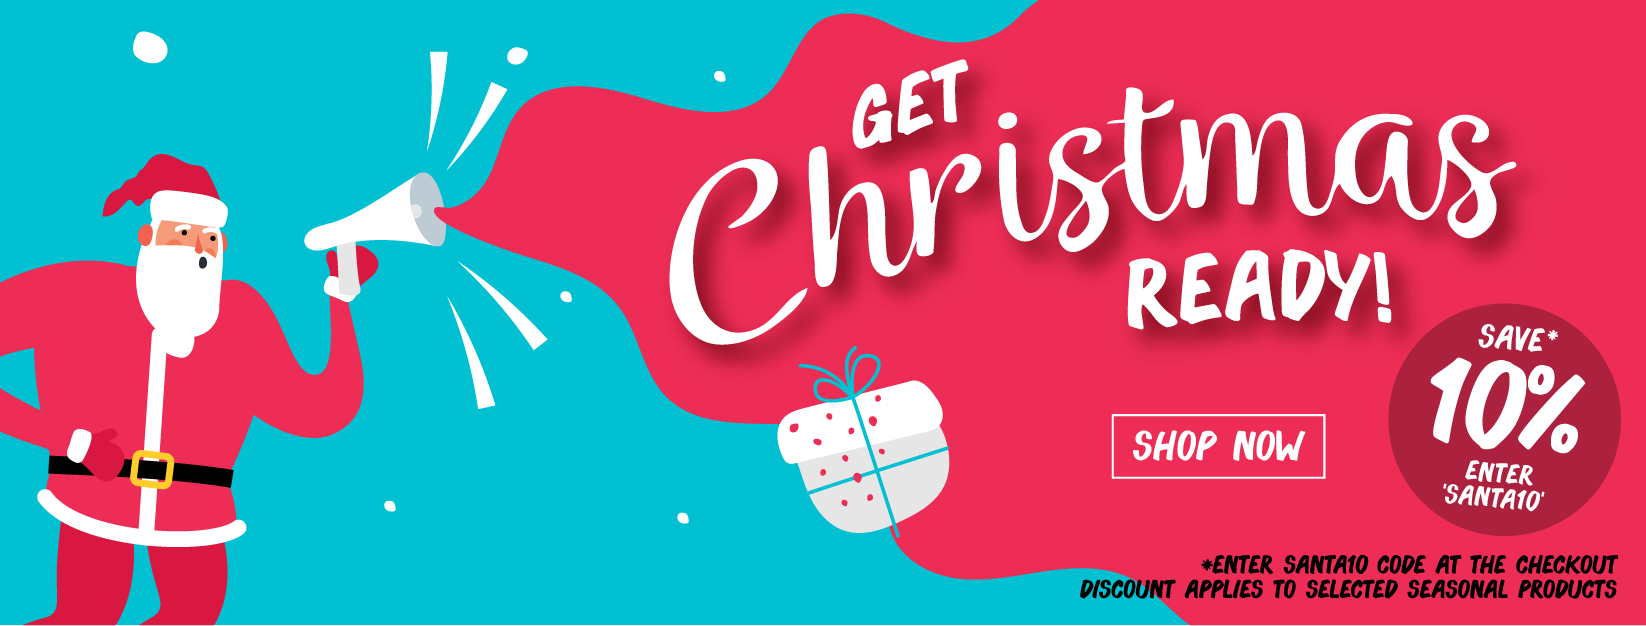 Order from our Christmas collection now and receive 10% off.